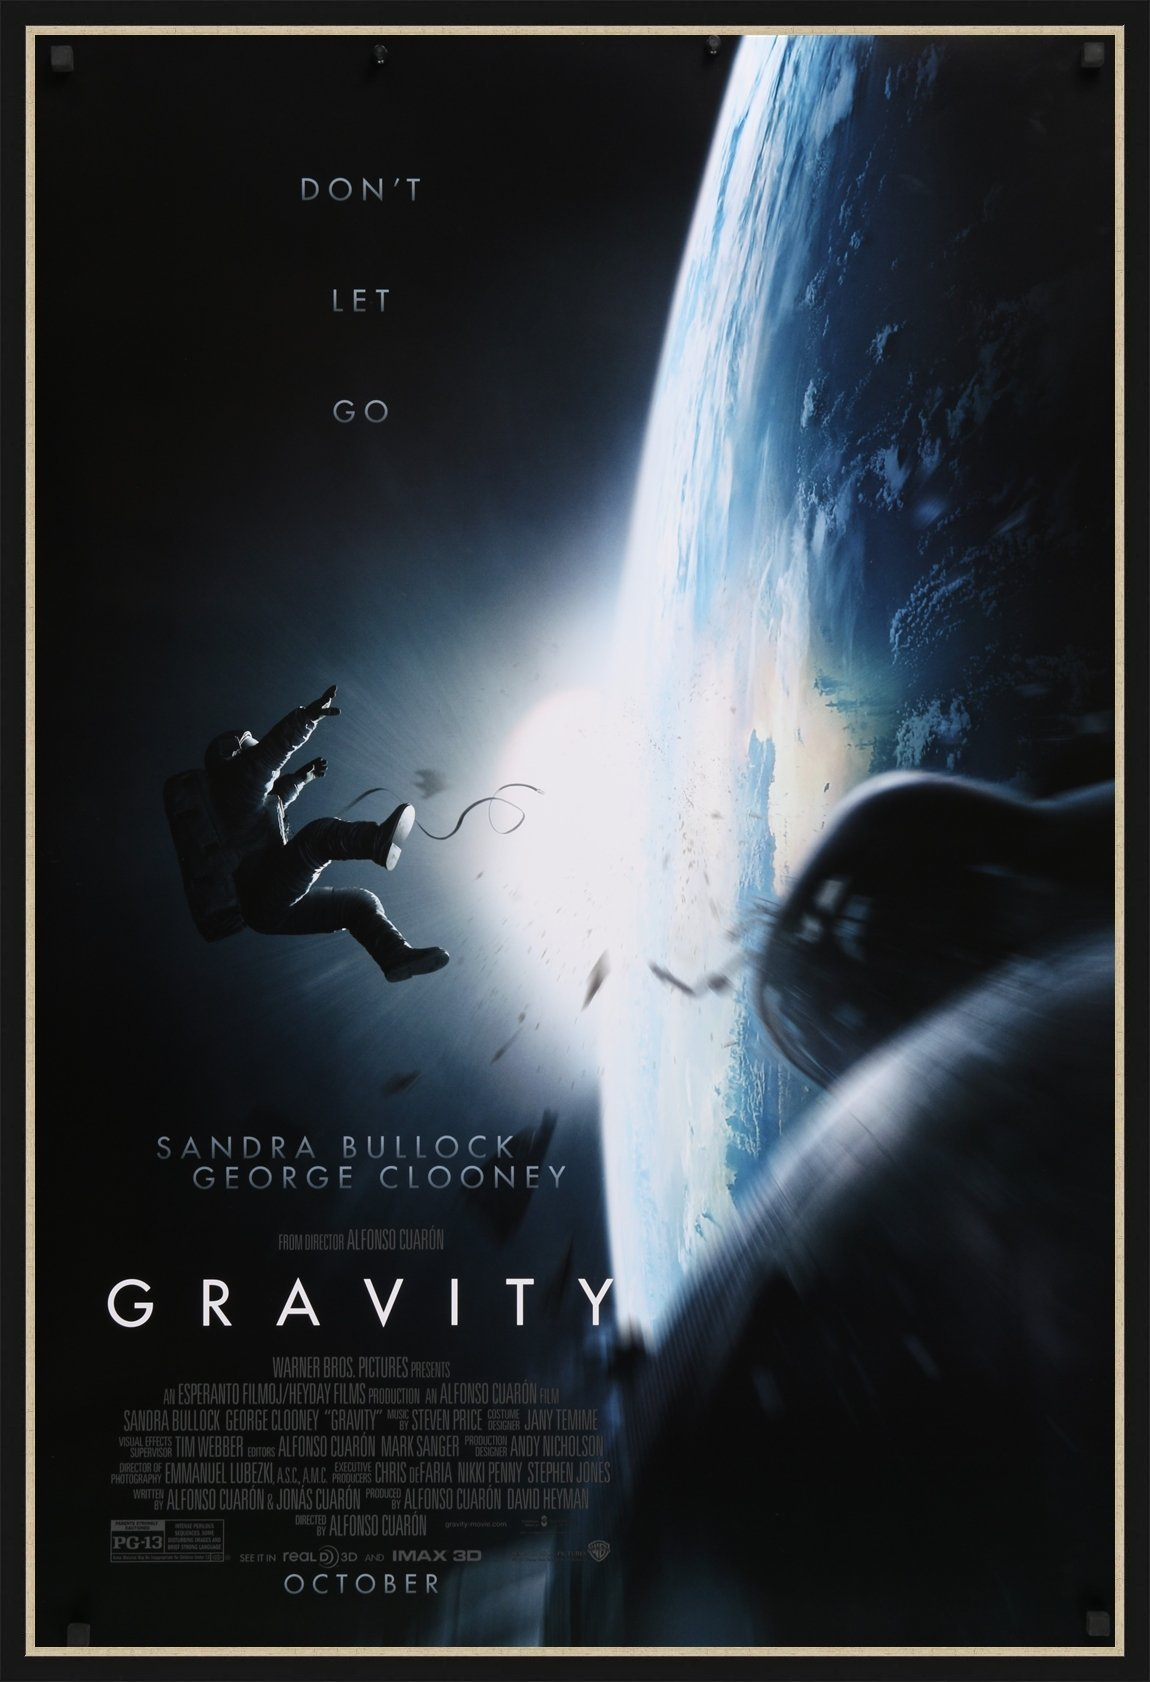 An original movie poster for the 2013 film Gravity